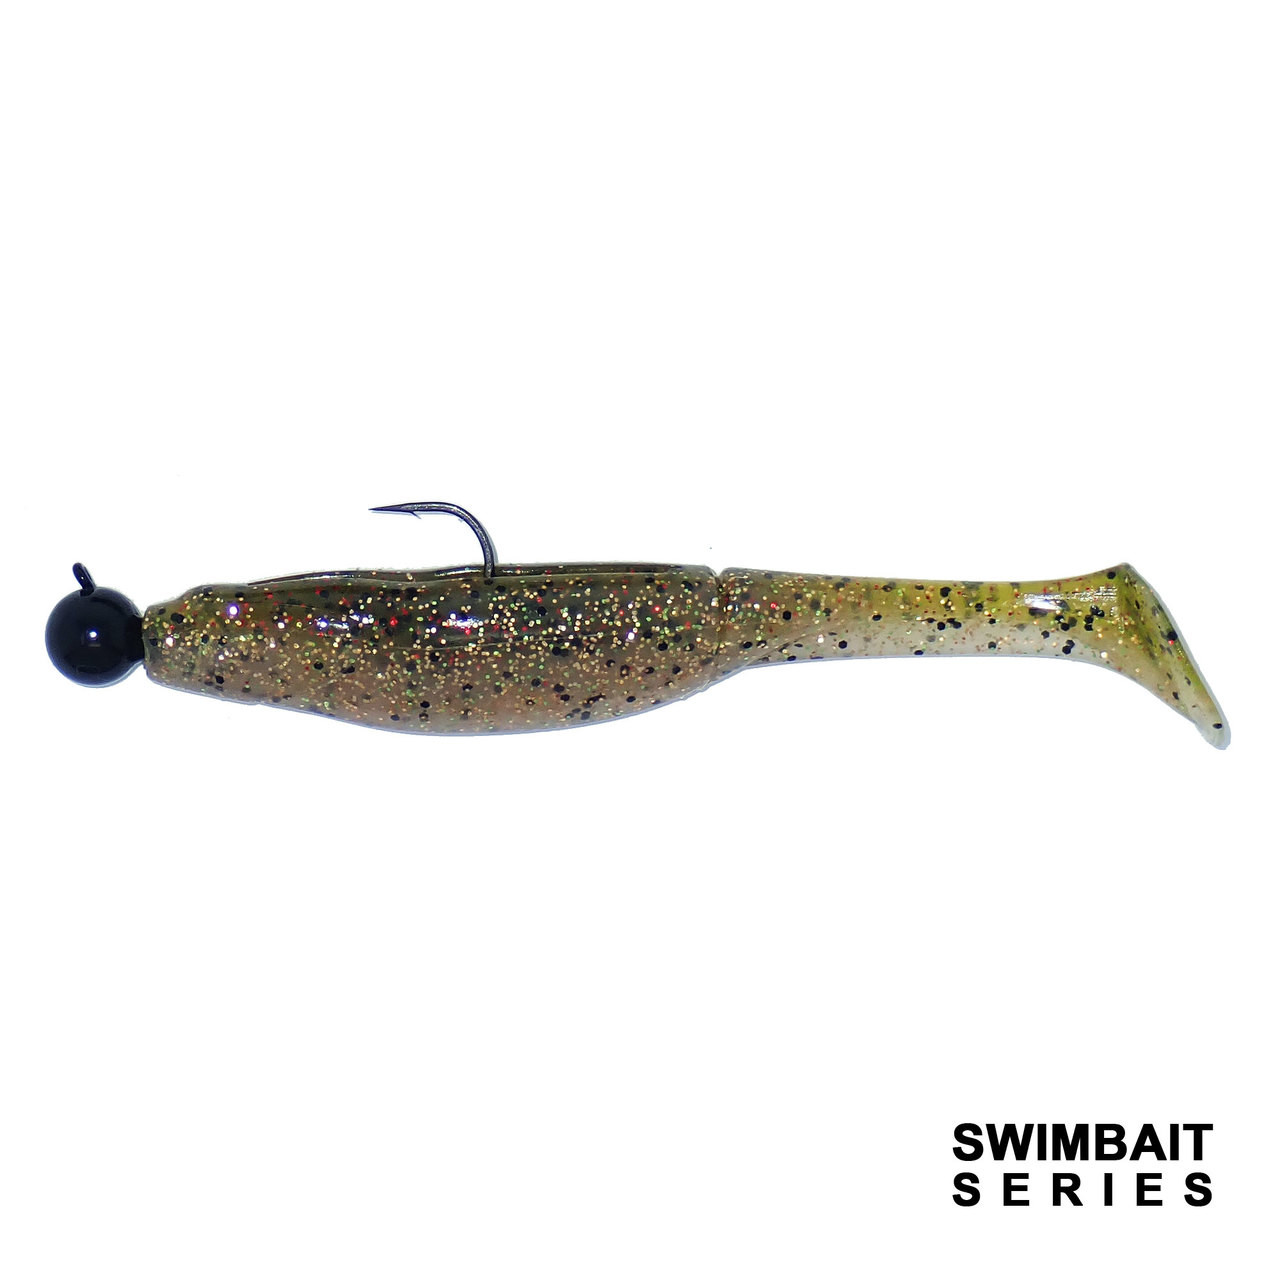 Swimbait - 4.5 inch - Goby (3pk)